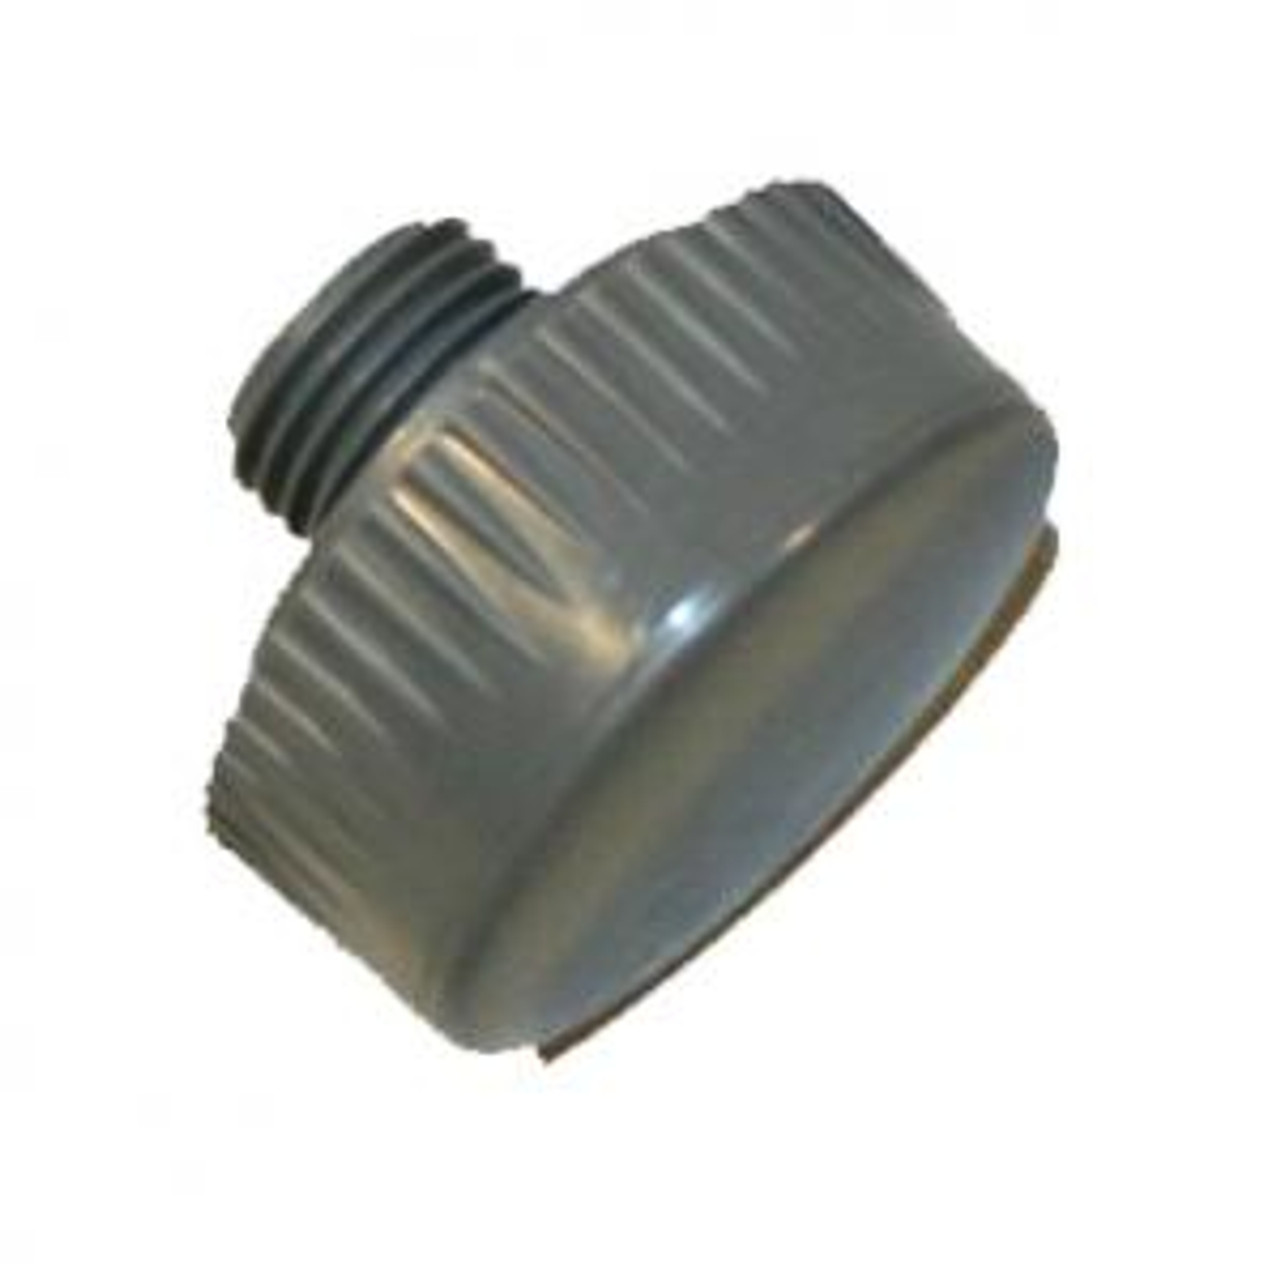 """1.5"""" Soft Grey replacement tip for DB150 or NT 150 hammers. One tip."""